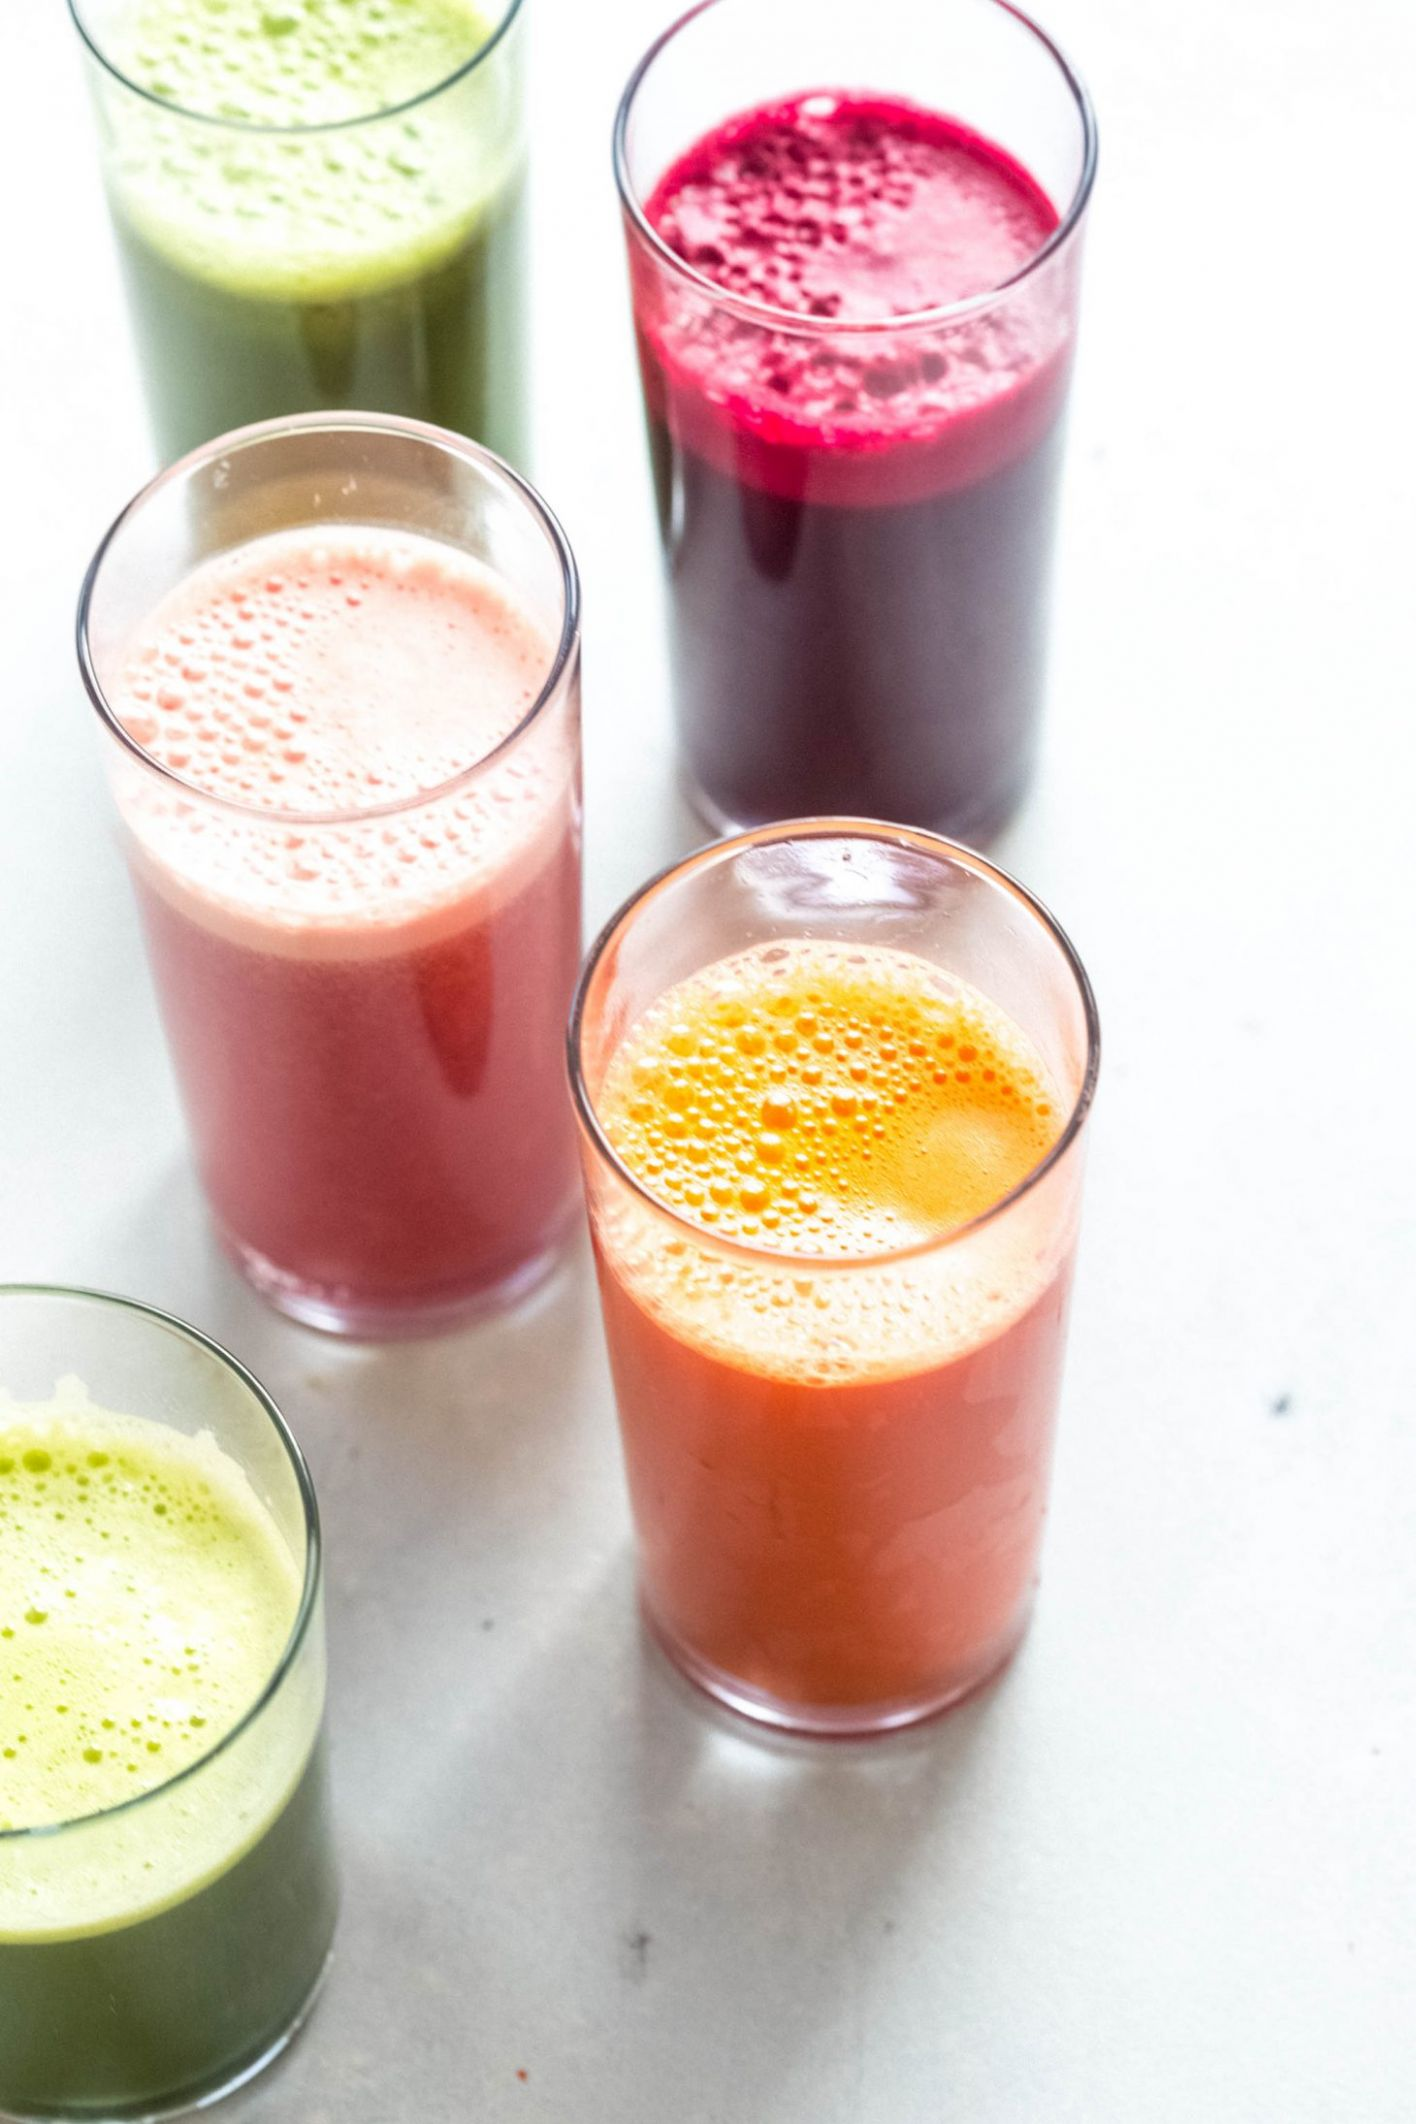 Healthy Juicing Recipes // Juice Cleanse | Platings + Pairings - Juice Recipes For Weight Loss And Energy